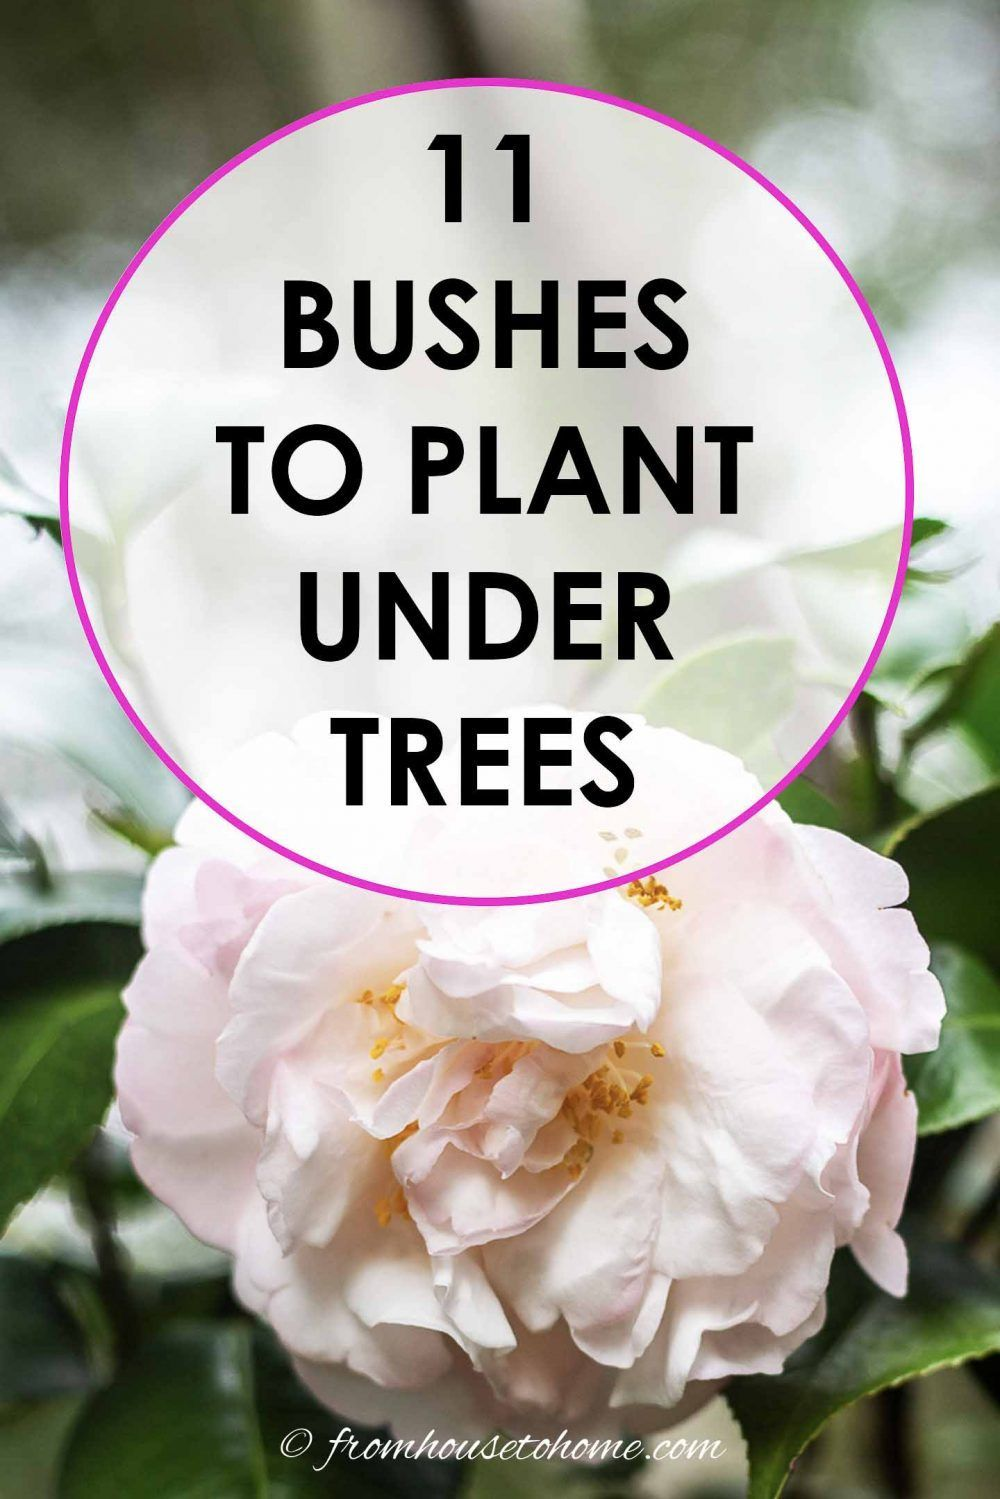 This list of shrubs is perfect for my shade garden I wasnt sure how to fill in the garden bed and now I have a bunch of different bushes that will work in my backyard gar...